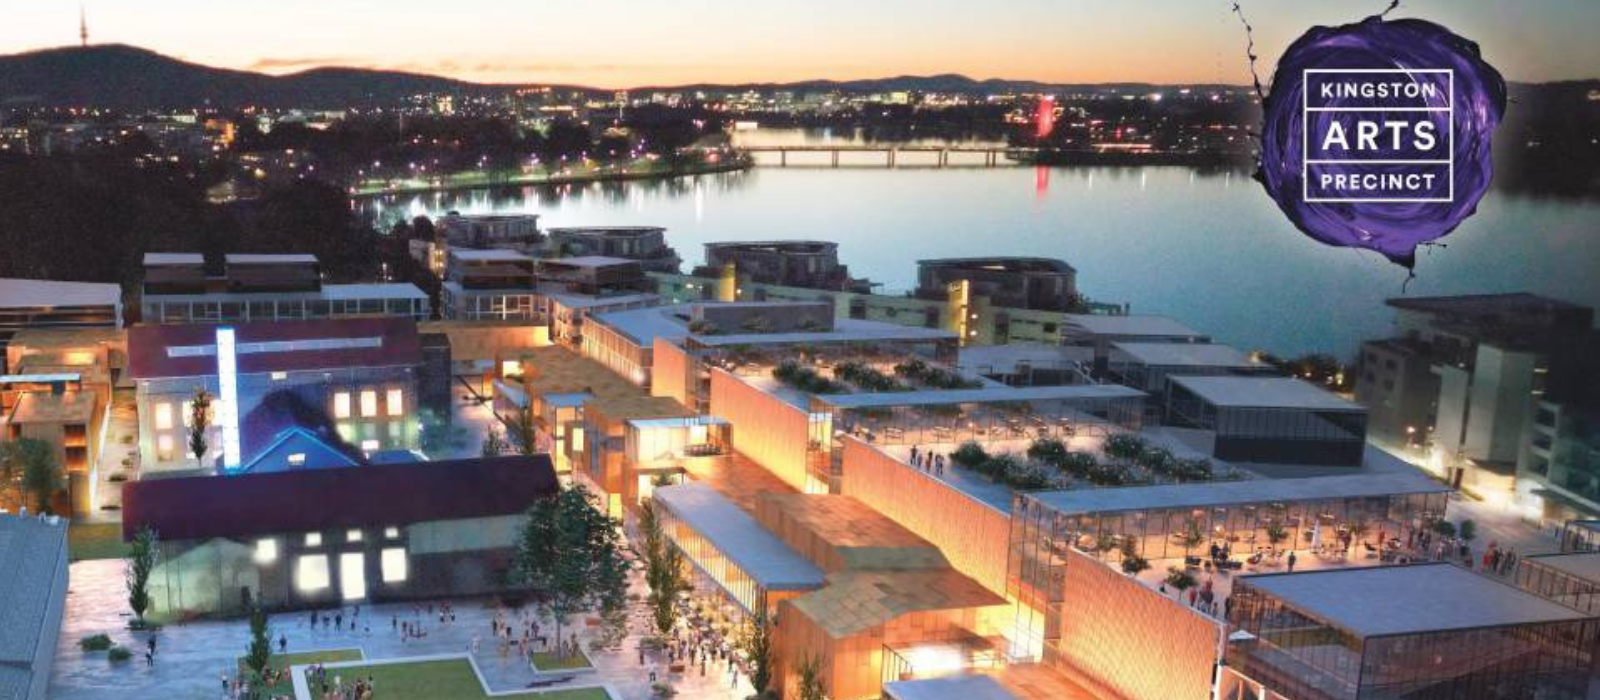 Image: Artists' impression of the proposed Kingston Arts Precinct. (via Canberra Times)